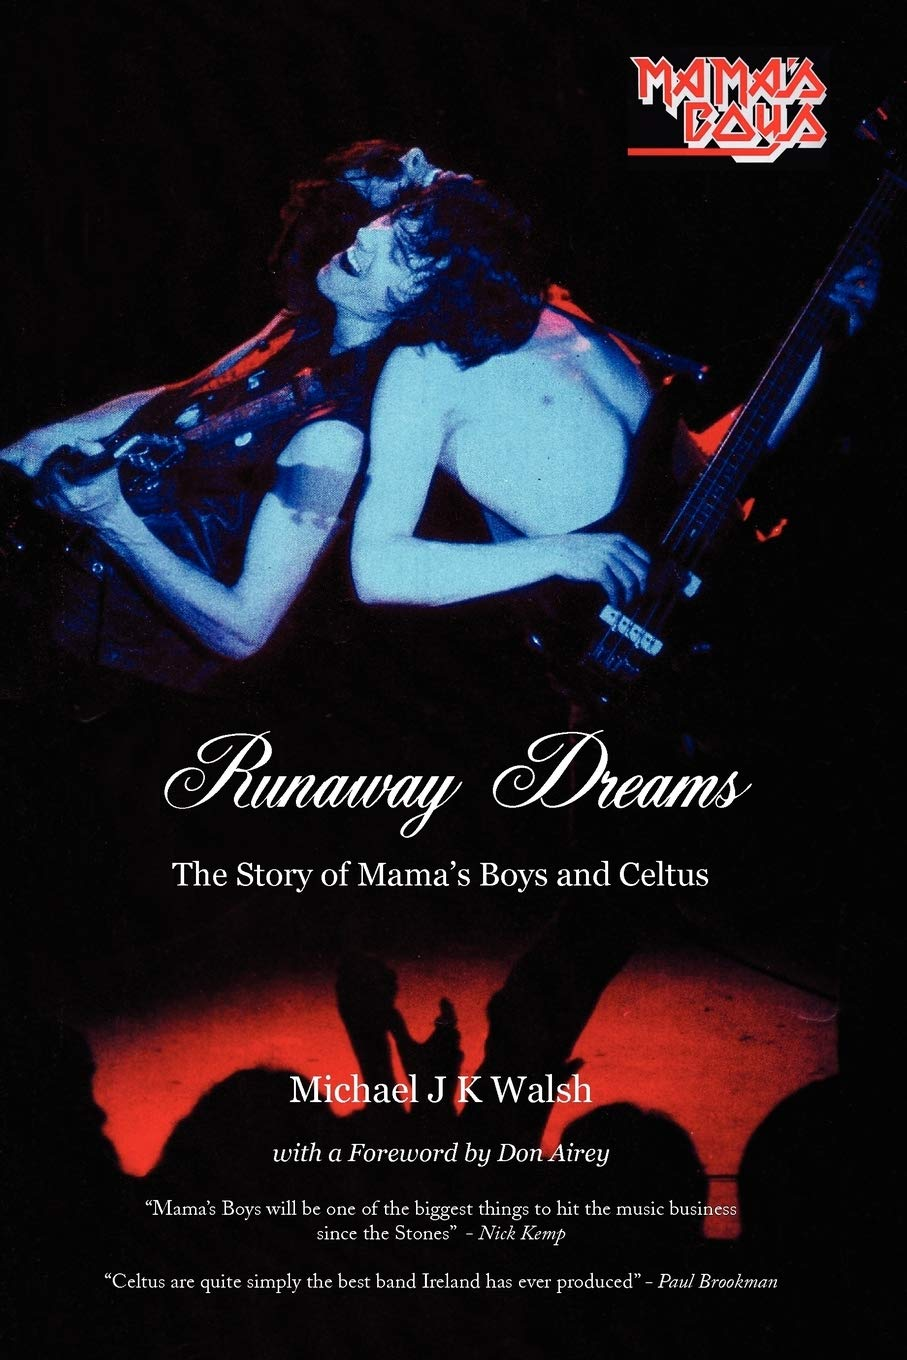 Image OfRunaway Dreams: The Story Of Mama's Boys And Celtus